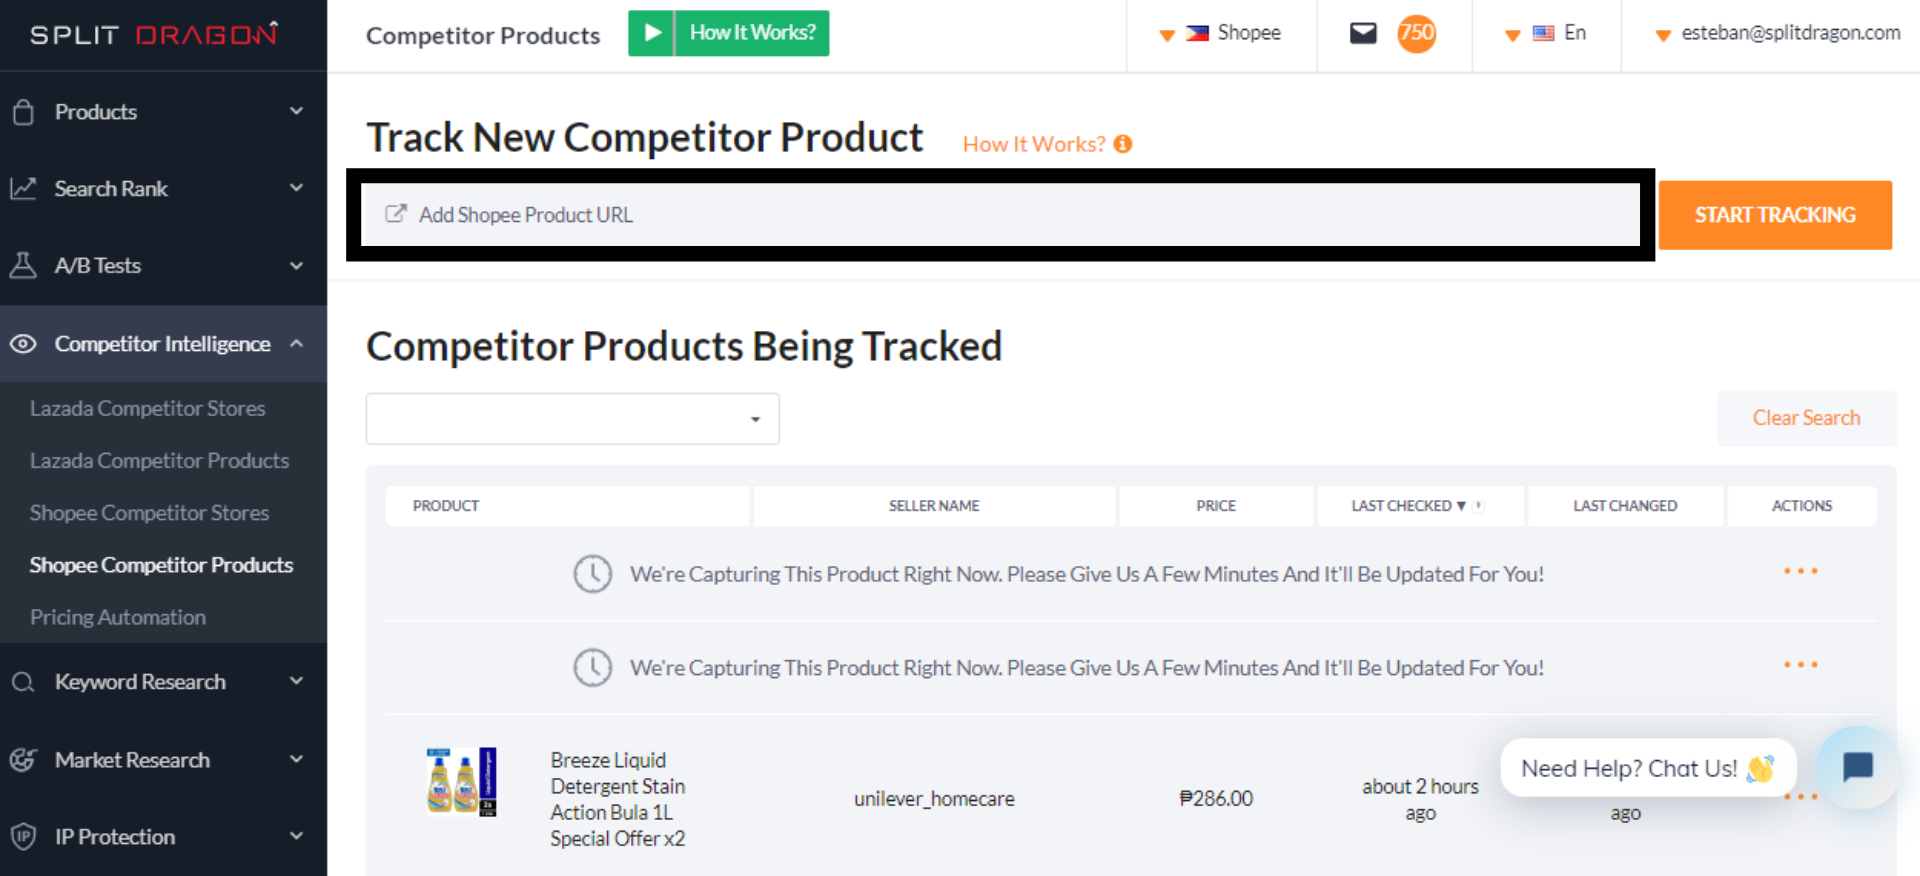 Pricing Strategy For Lazada And Shopee Sellers Based On Different Triggers/Events